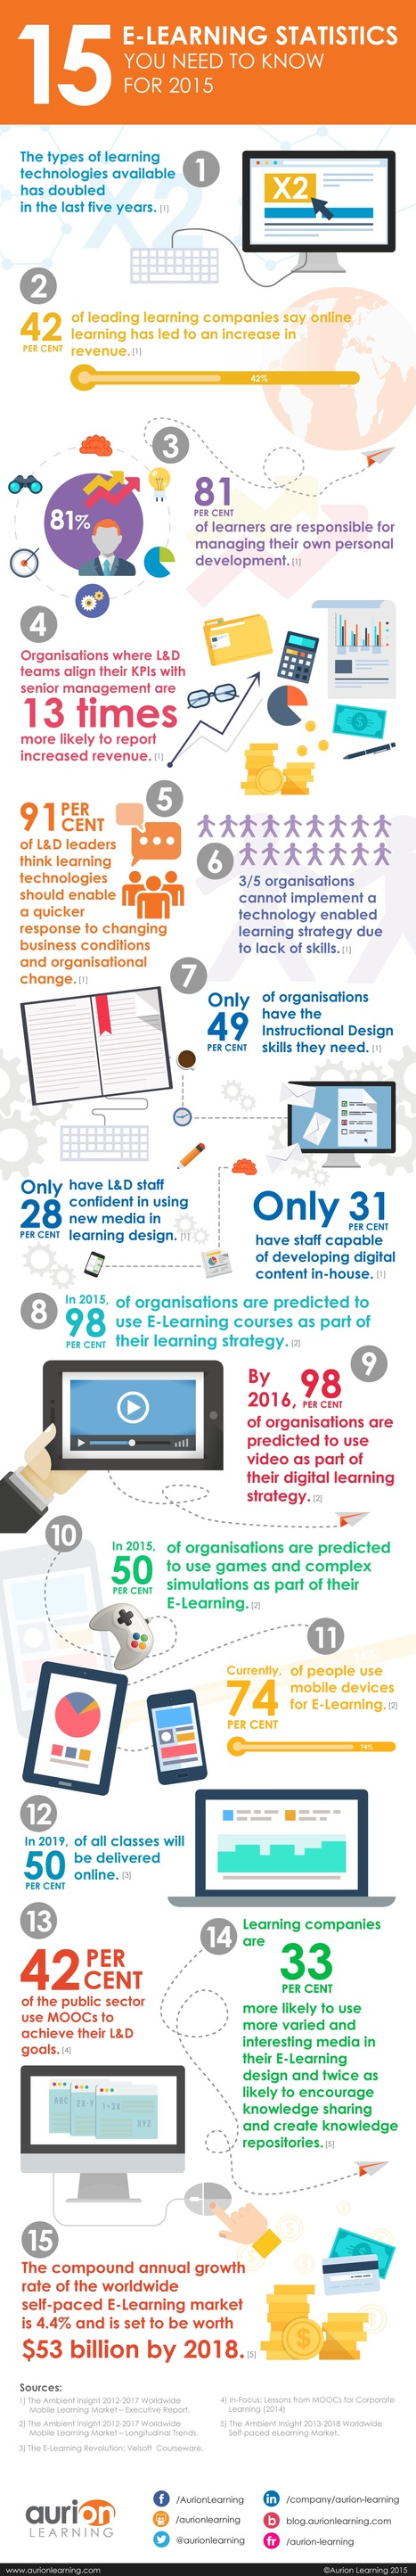 15 E-Learning Statistics You Need To Know For 2015 | Aurion Learning | Mobile Learning | Scoop.it